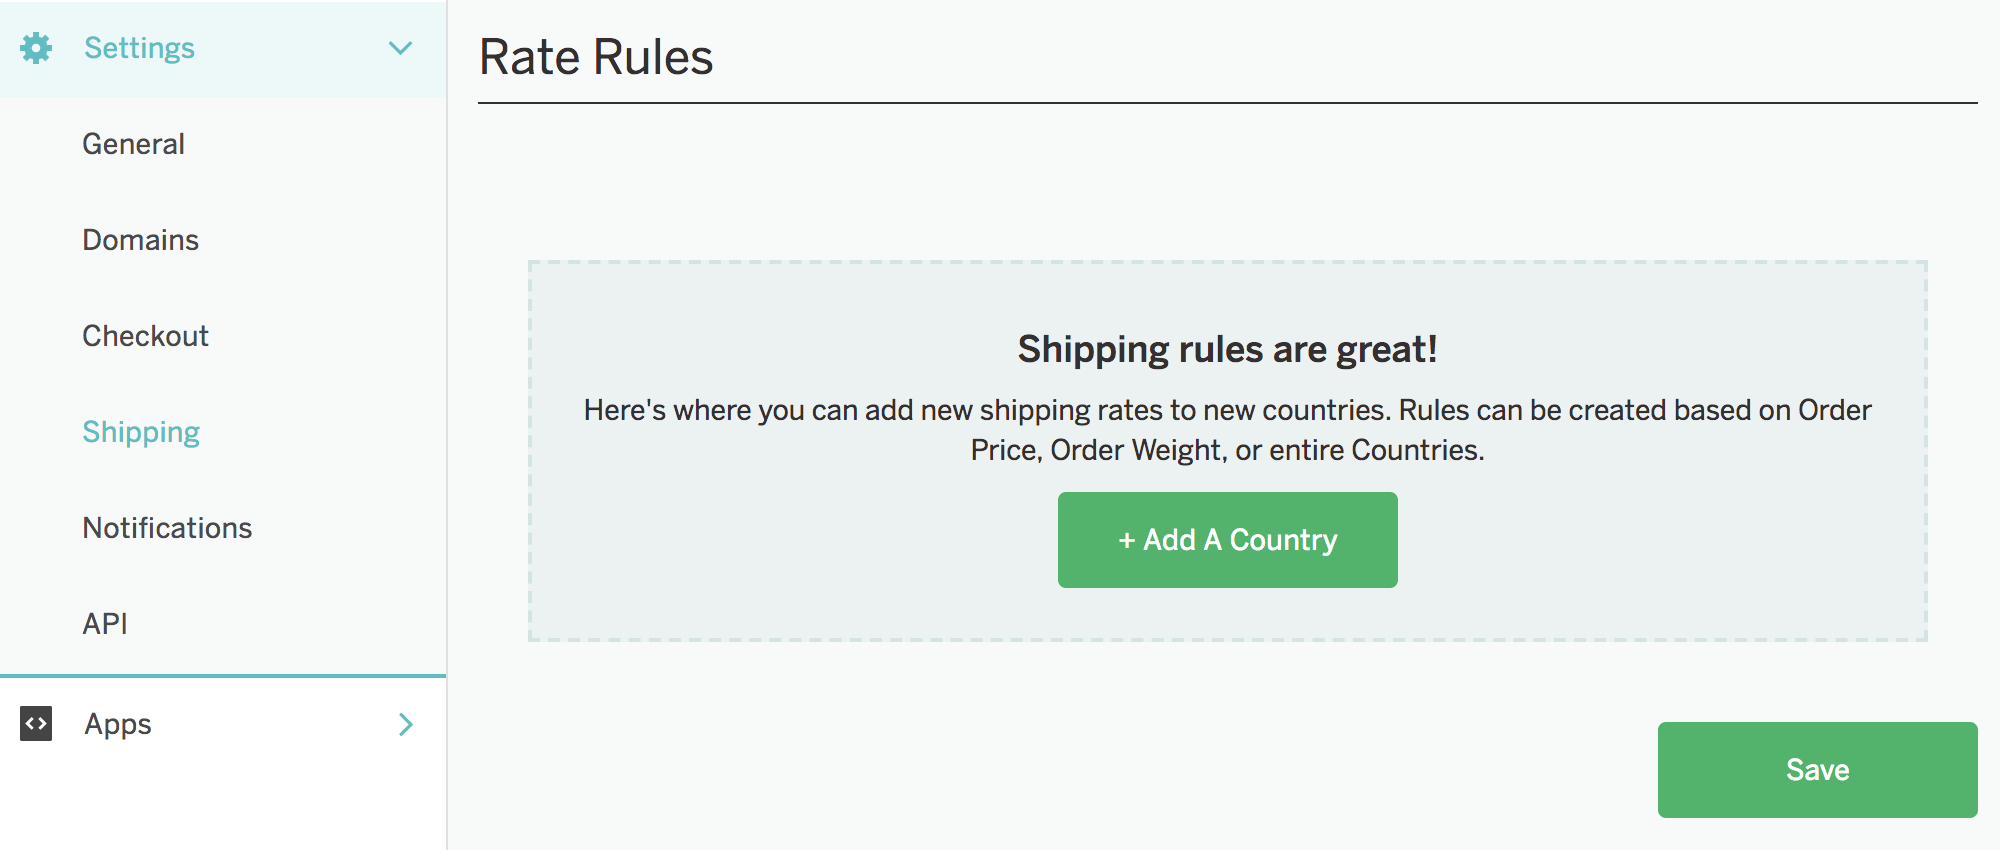 A screenshot showing the Shipping section of Settings in CrateJoy. Here, the 'Rate Rules' section is visible. There's an 'Add A Country' button at the center of the page under where it says 'Shipping rules are great! Here's where you can add new shipping rates to new countries. Rules can be created based on Order Price, Order Weight, or entire Countries.'